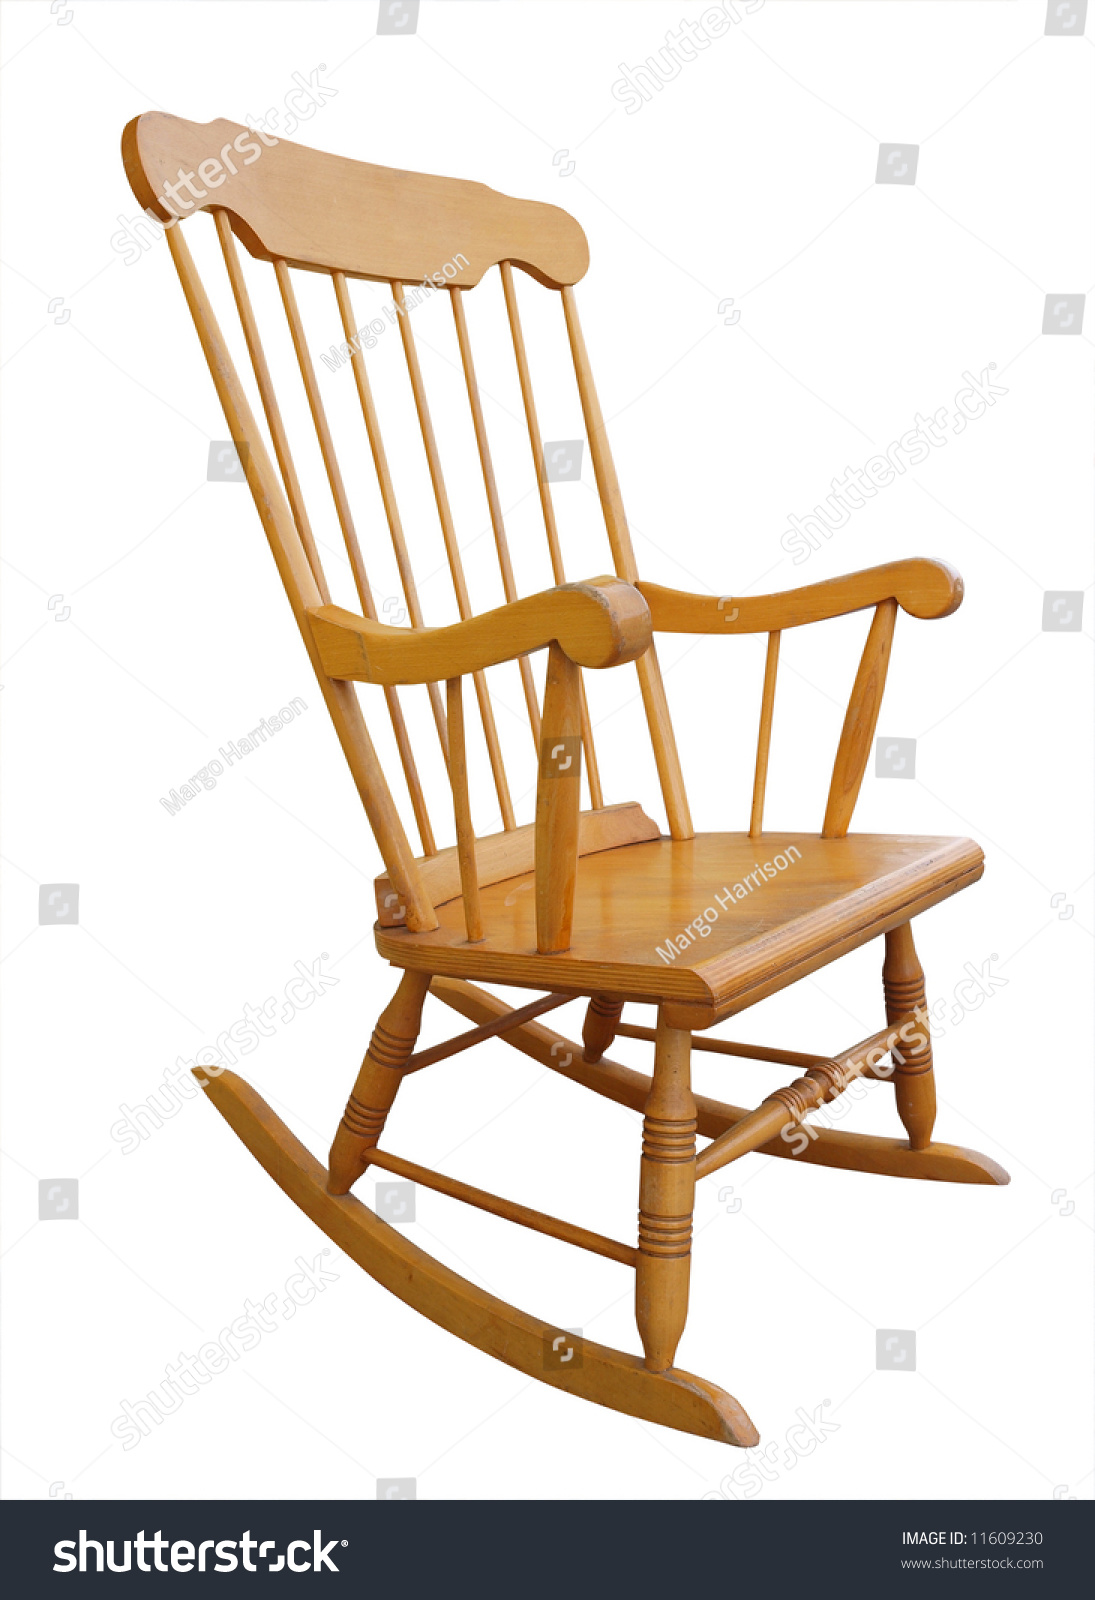 rocking chair design pas cher 28 images wooden rocking chair isolated with clipping path. Black Bedroom Furniture Sets. Home Design Ideas